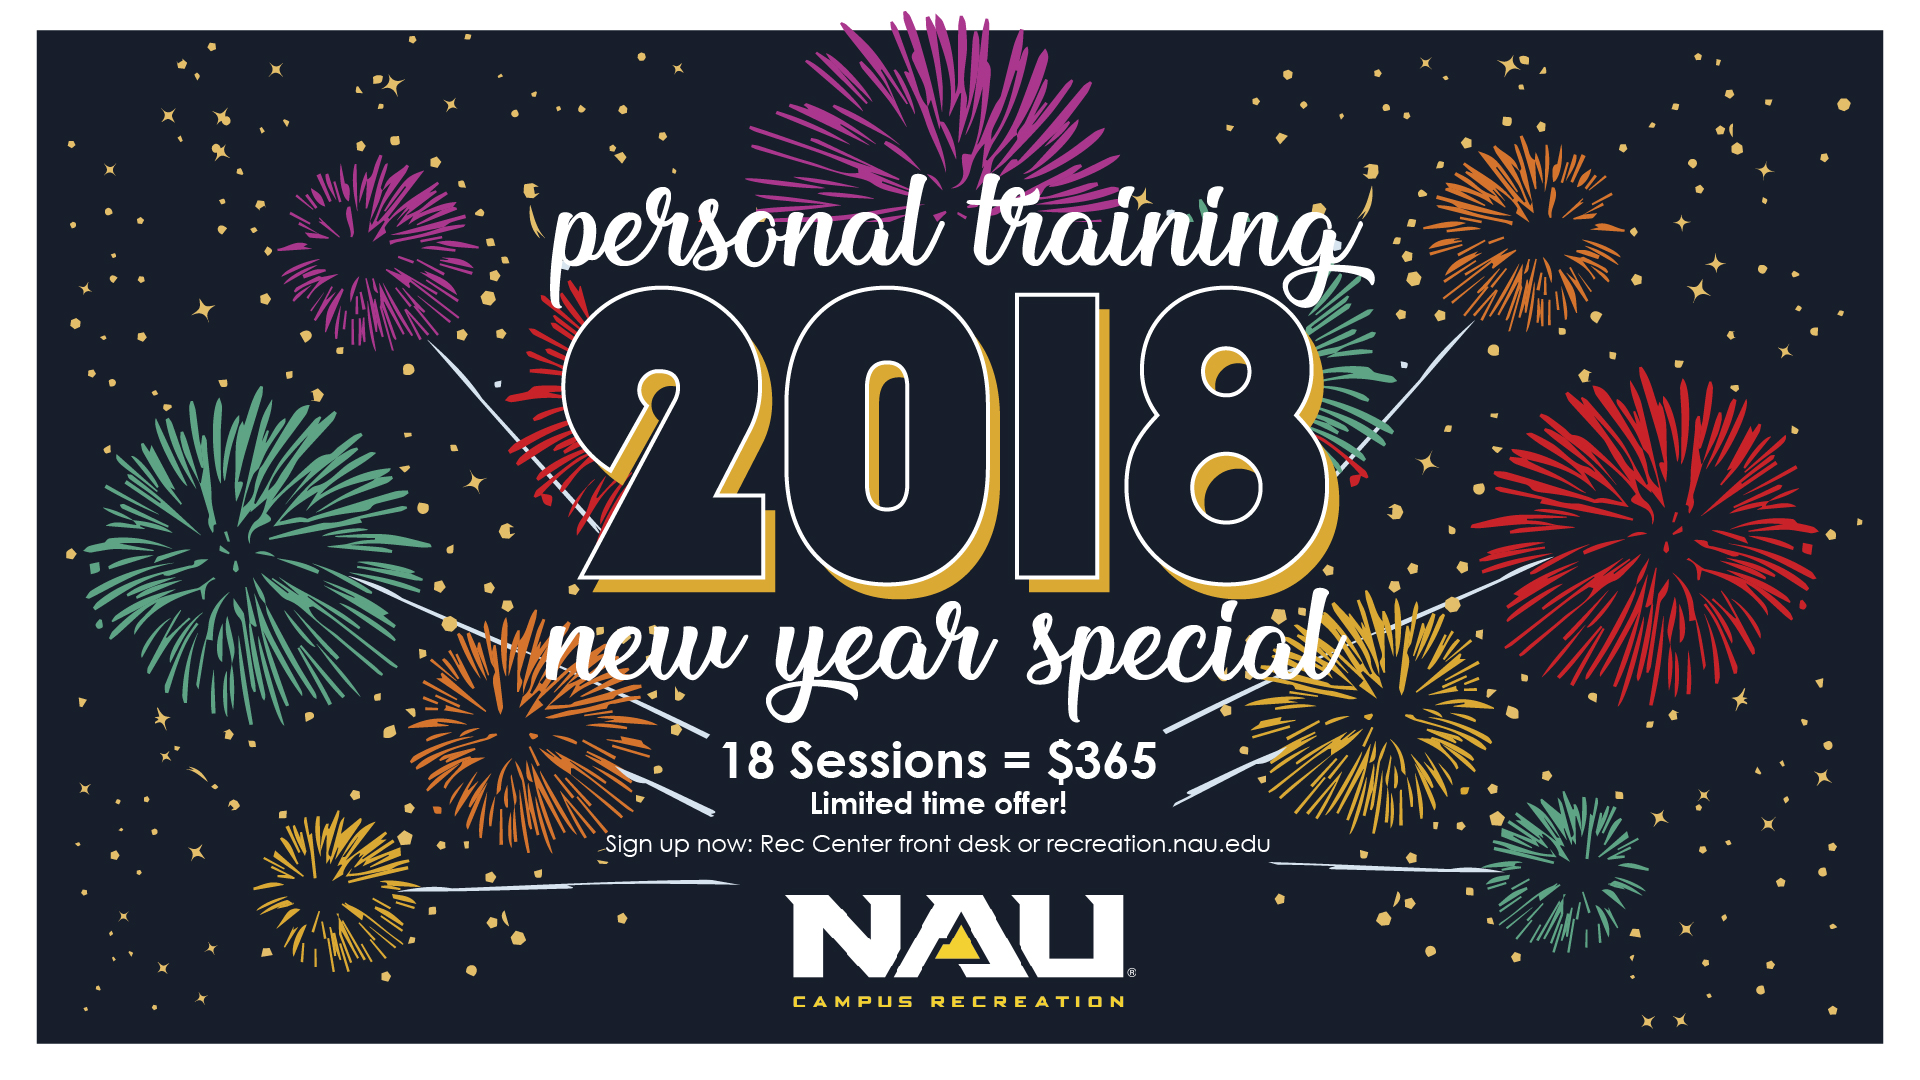 NAU Events - Personal Training New Year Special